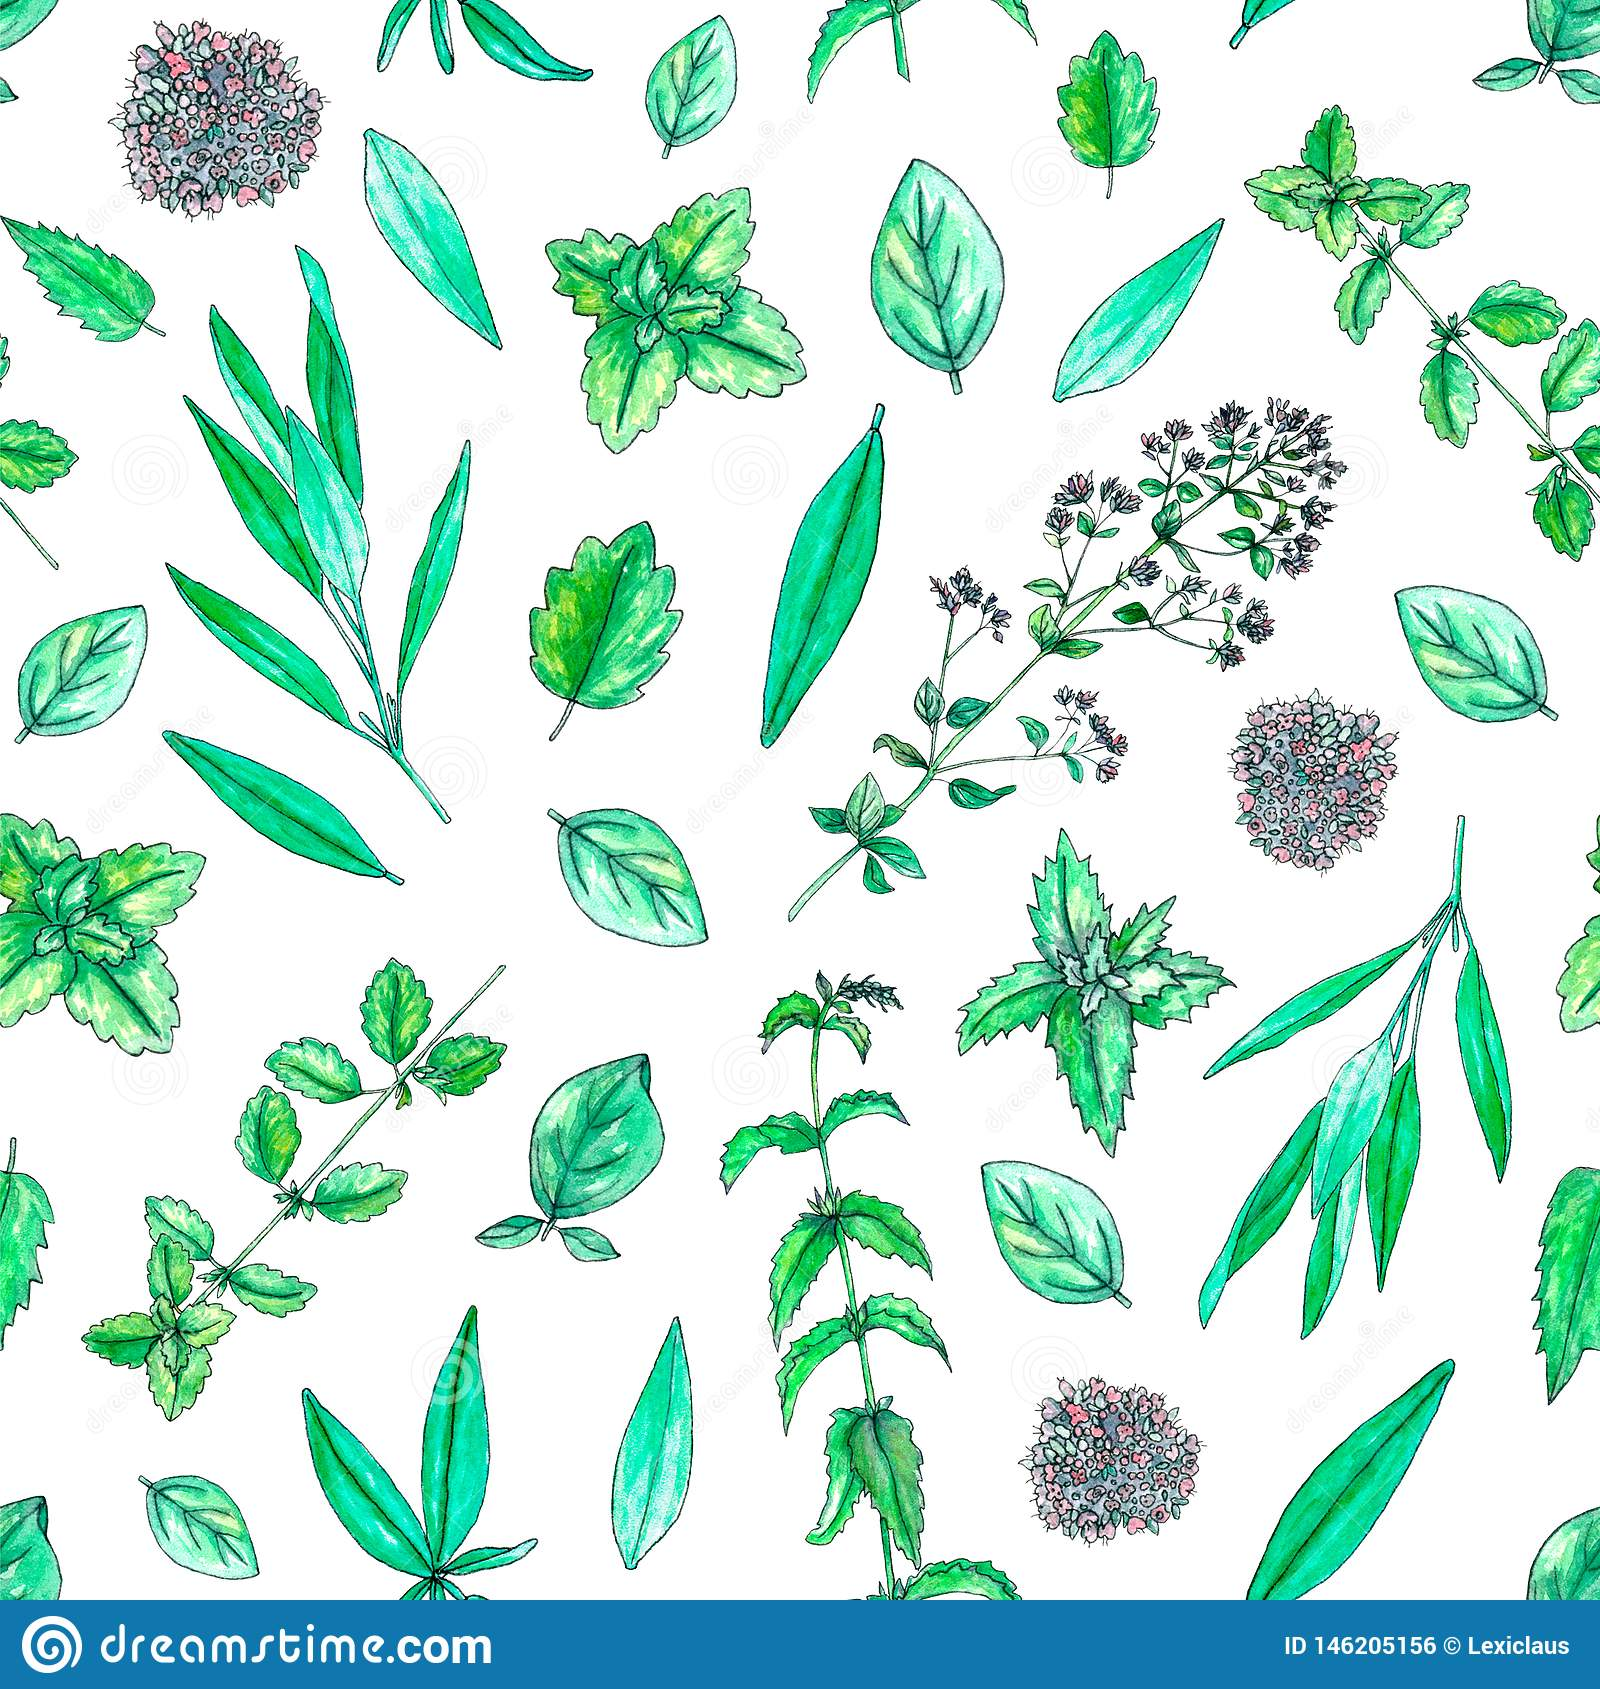 Seamless pattern with hand painted watercolor sage, mint, balm, oregano isolated on white